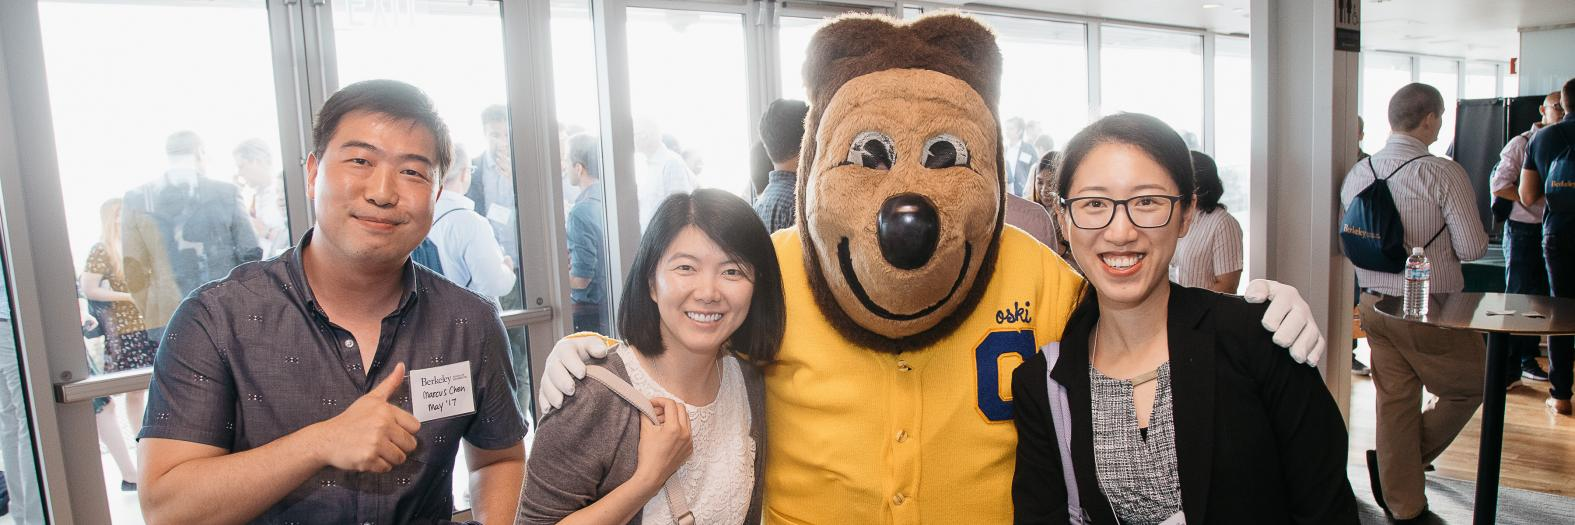 students with Oski